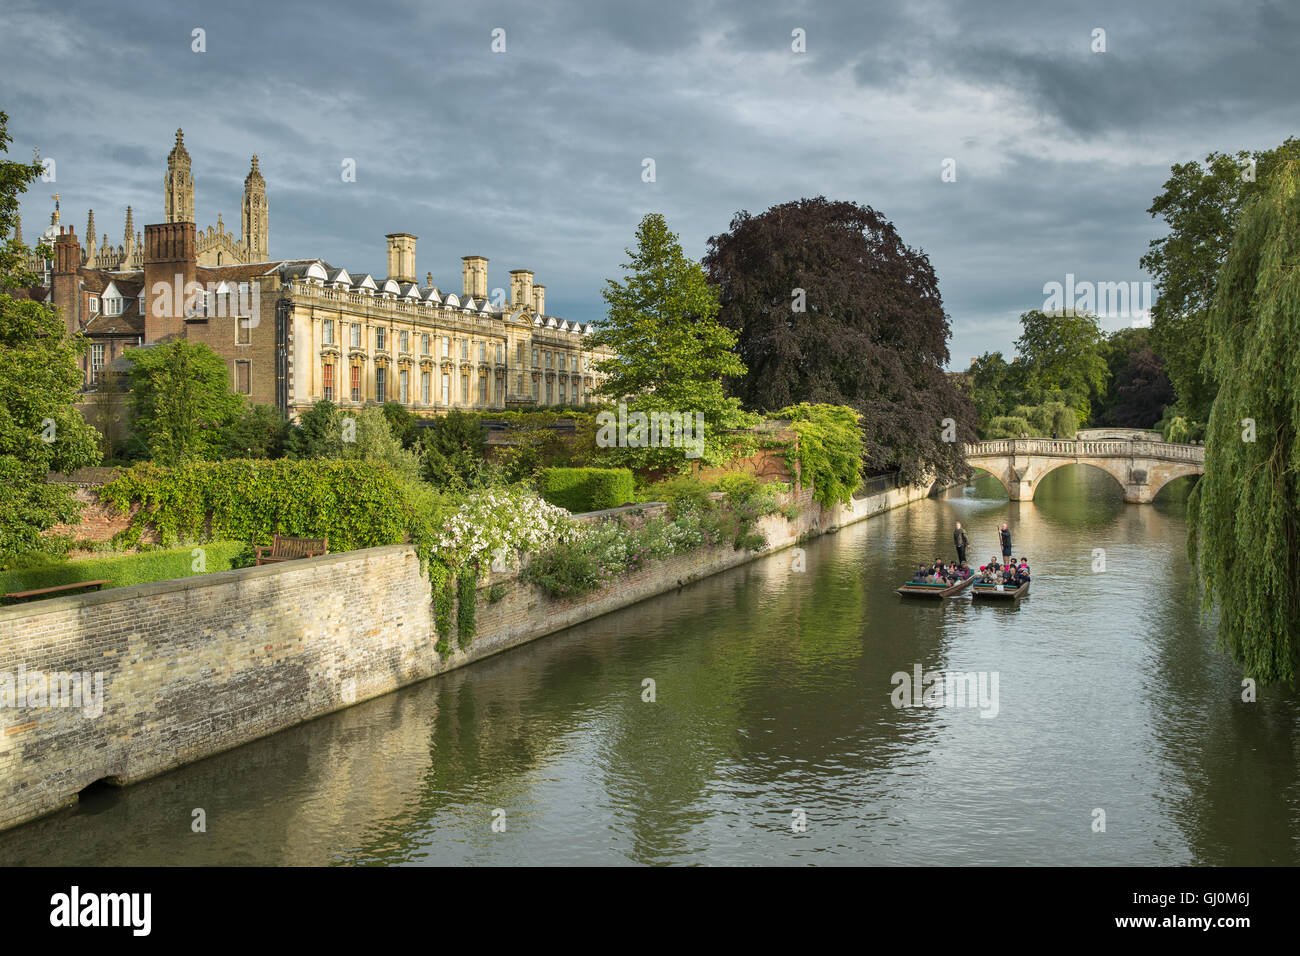 punters on the River Cam pass Clare College, Cambridge, England - Stock Image